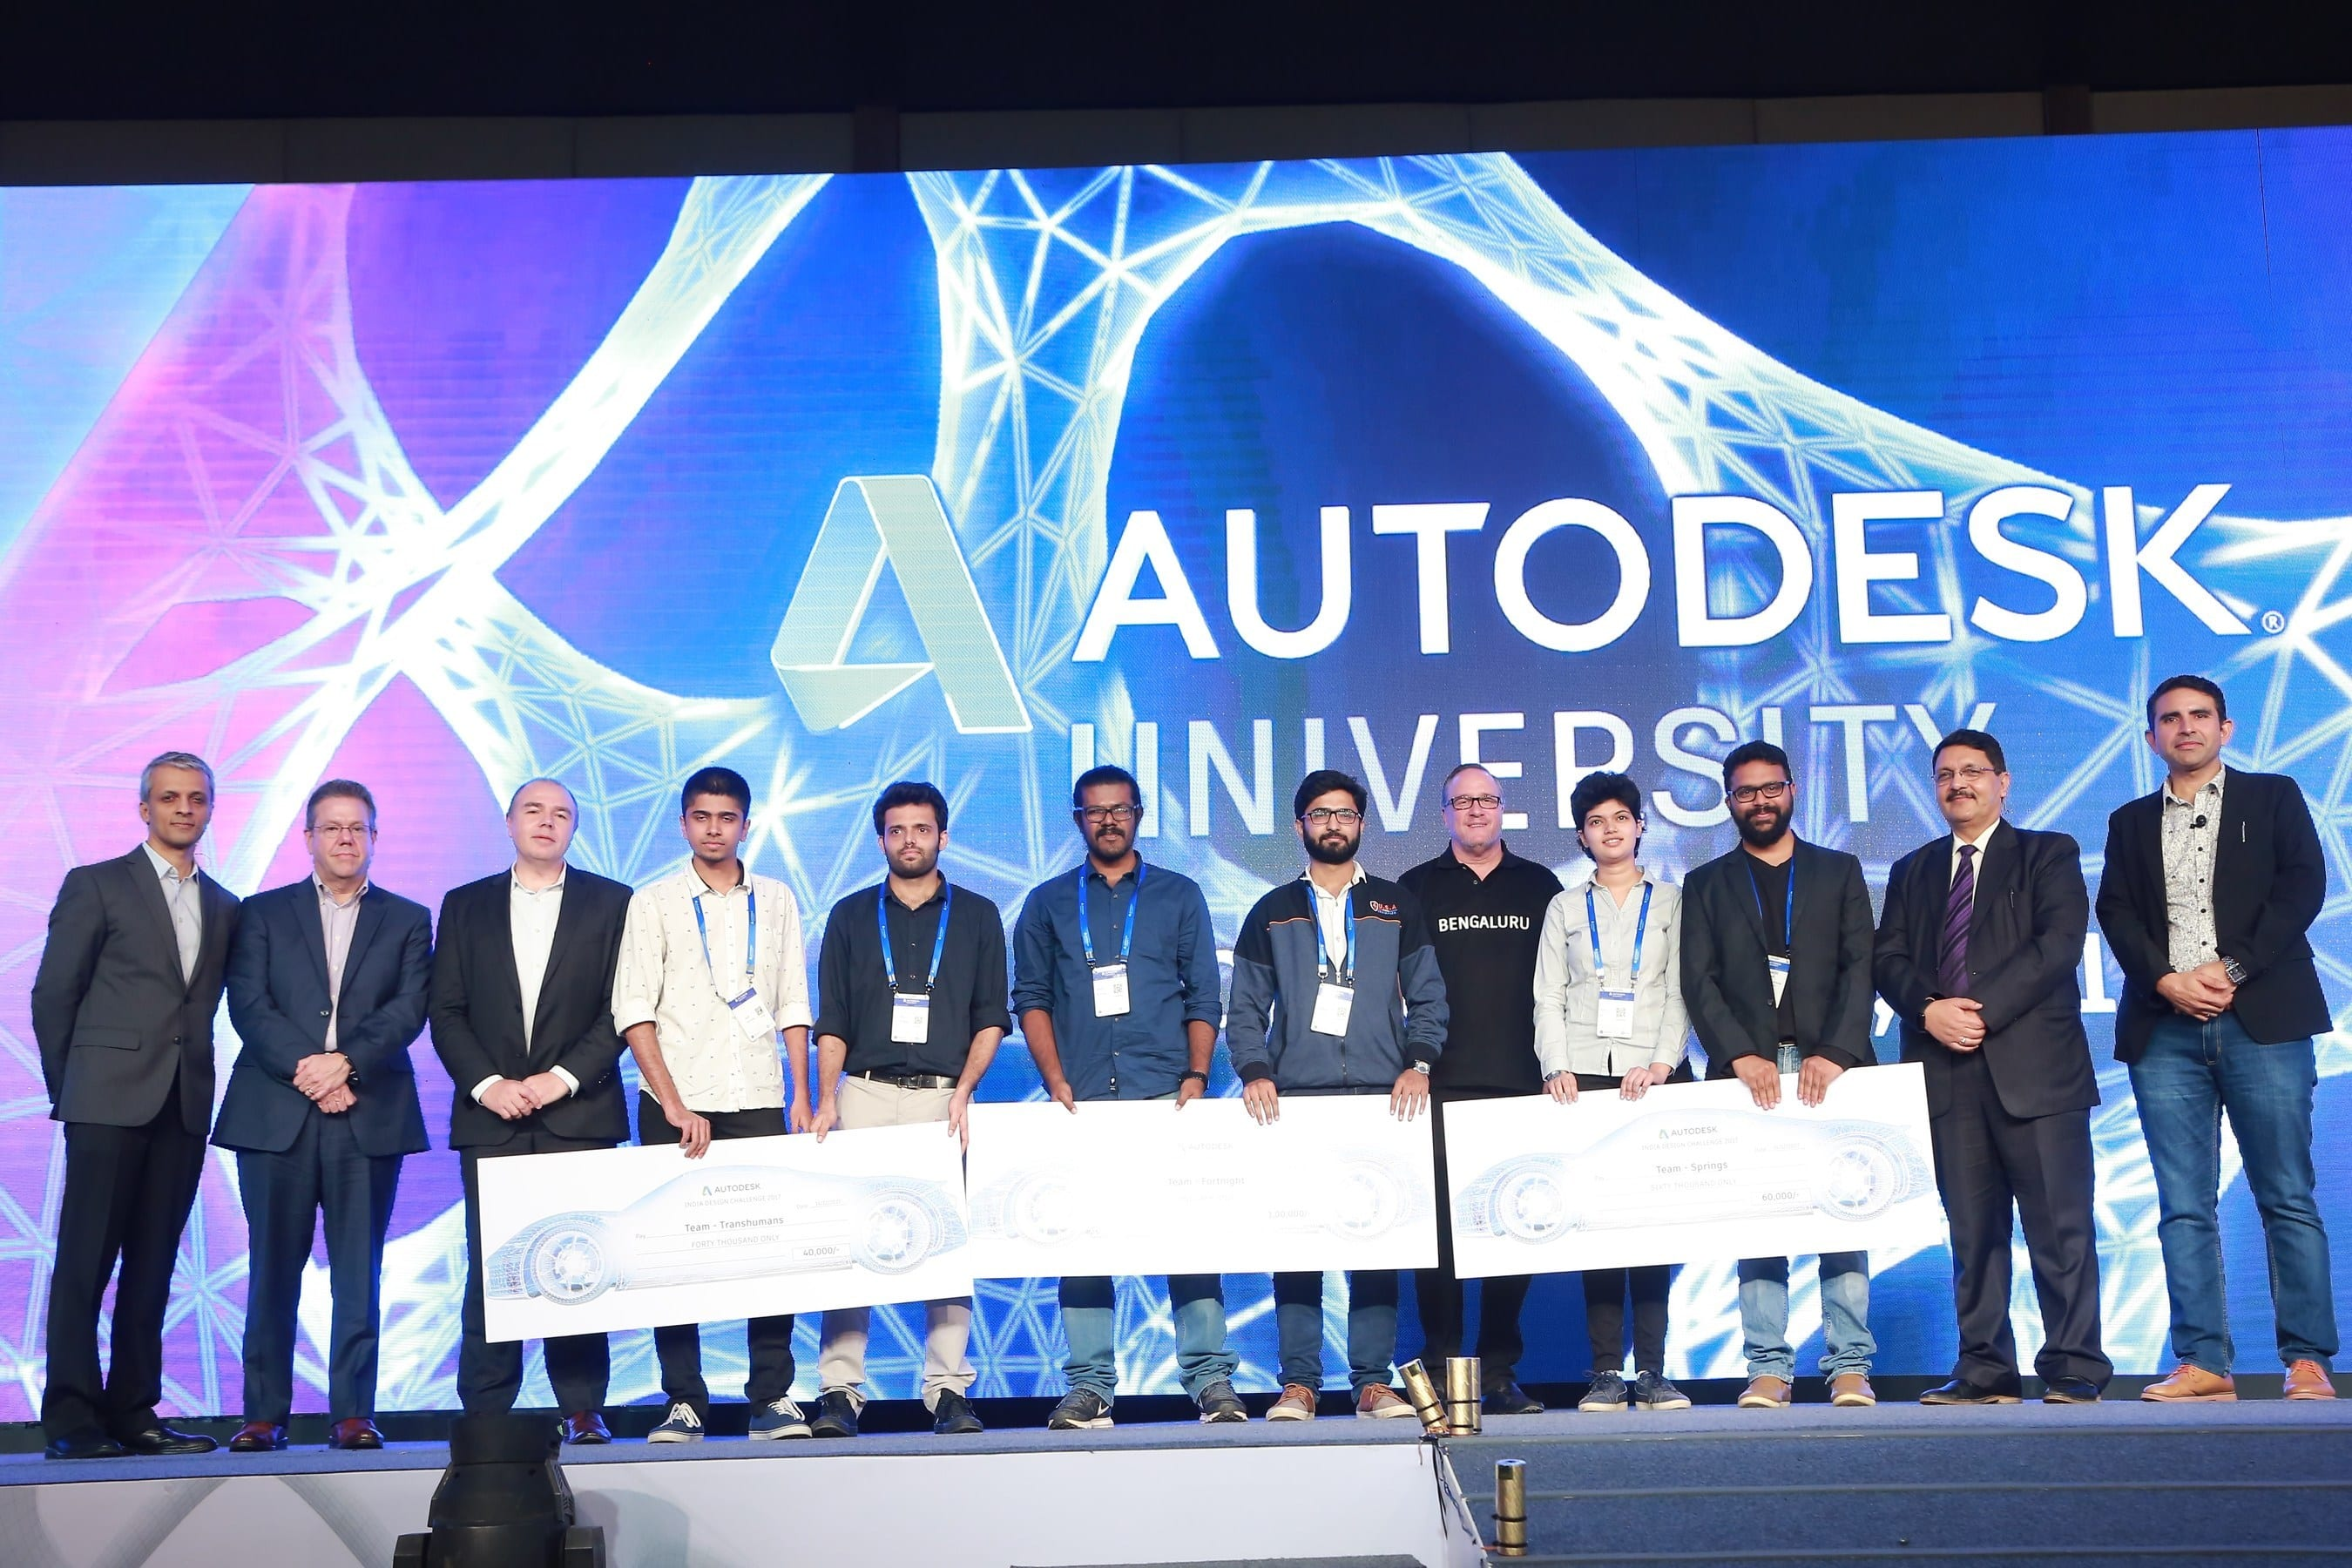 Winners of India Design Challenge announced at Autodesk University, Bengaluru 2017